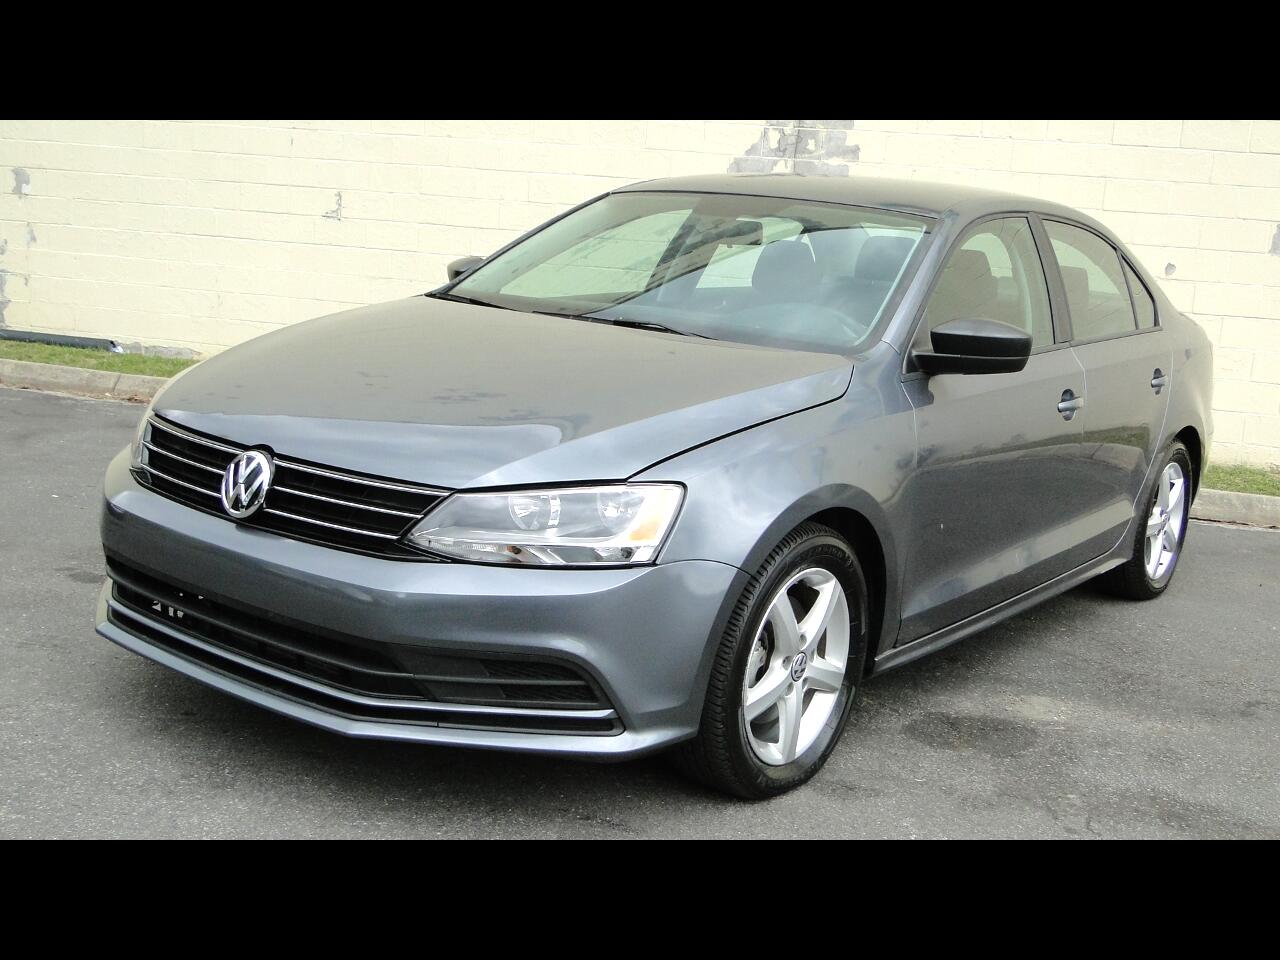 Volkswagen Jetta 2016 for Sale in Lexington, KY